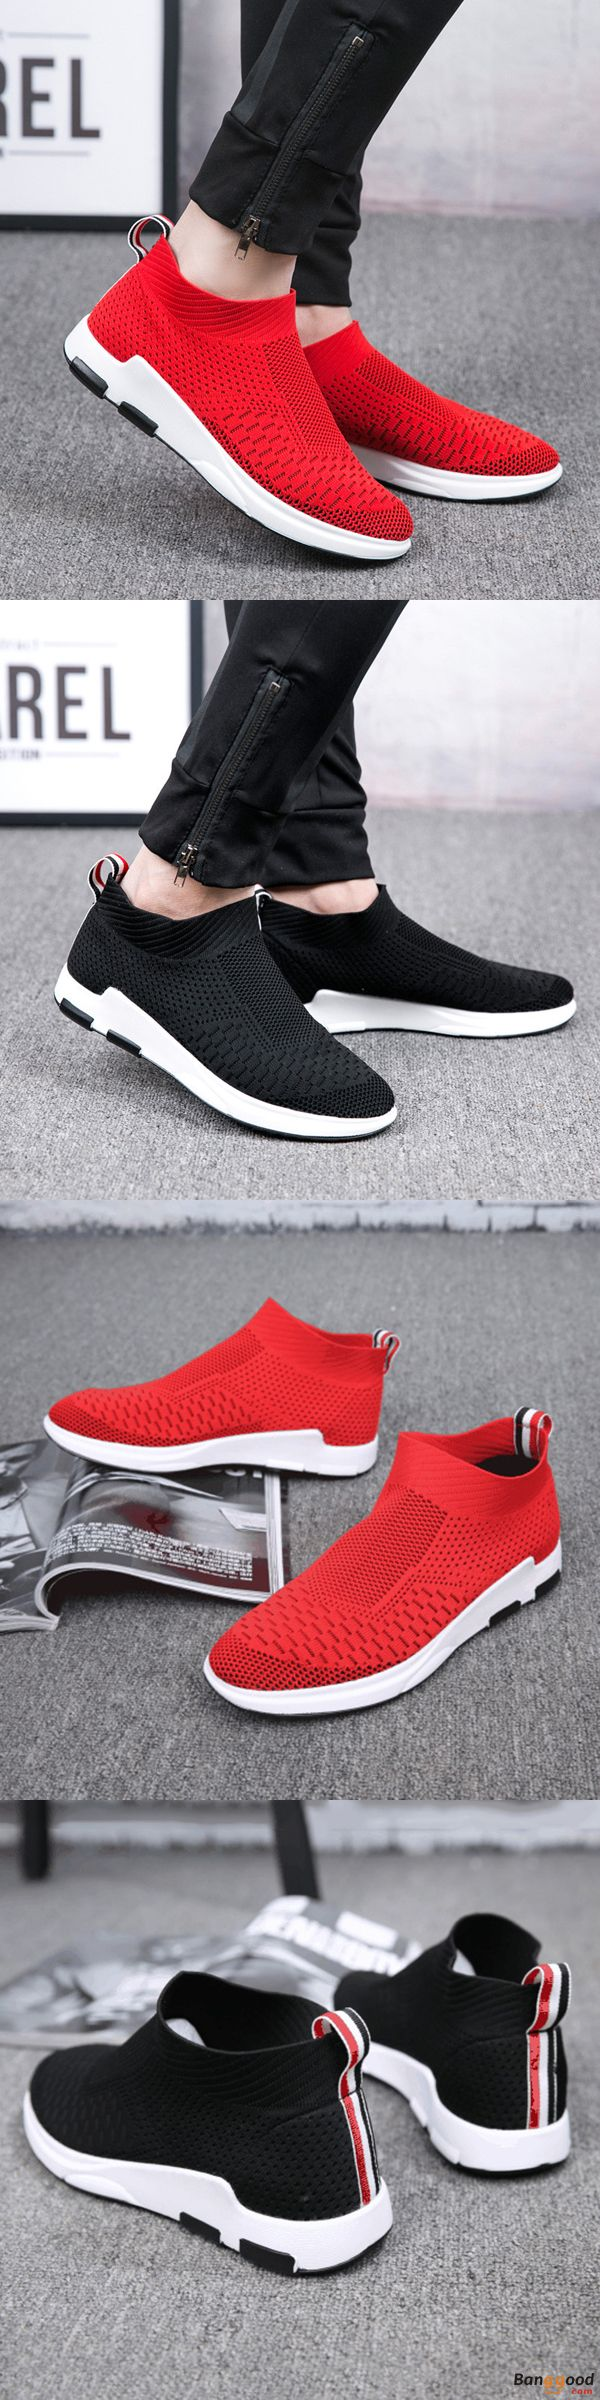 US$40.45 + Free shipping. Men Sneakers, Men Sport Shoes, Breathable Shoes, Mesh Shoes, Casual Look, Slip on Shoes, Shock Absorption Sneakers. US Size 6.5-10. Color: Black, Red. Light as Thin Air.